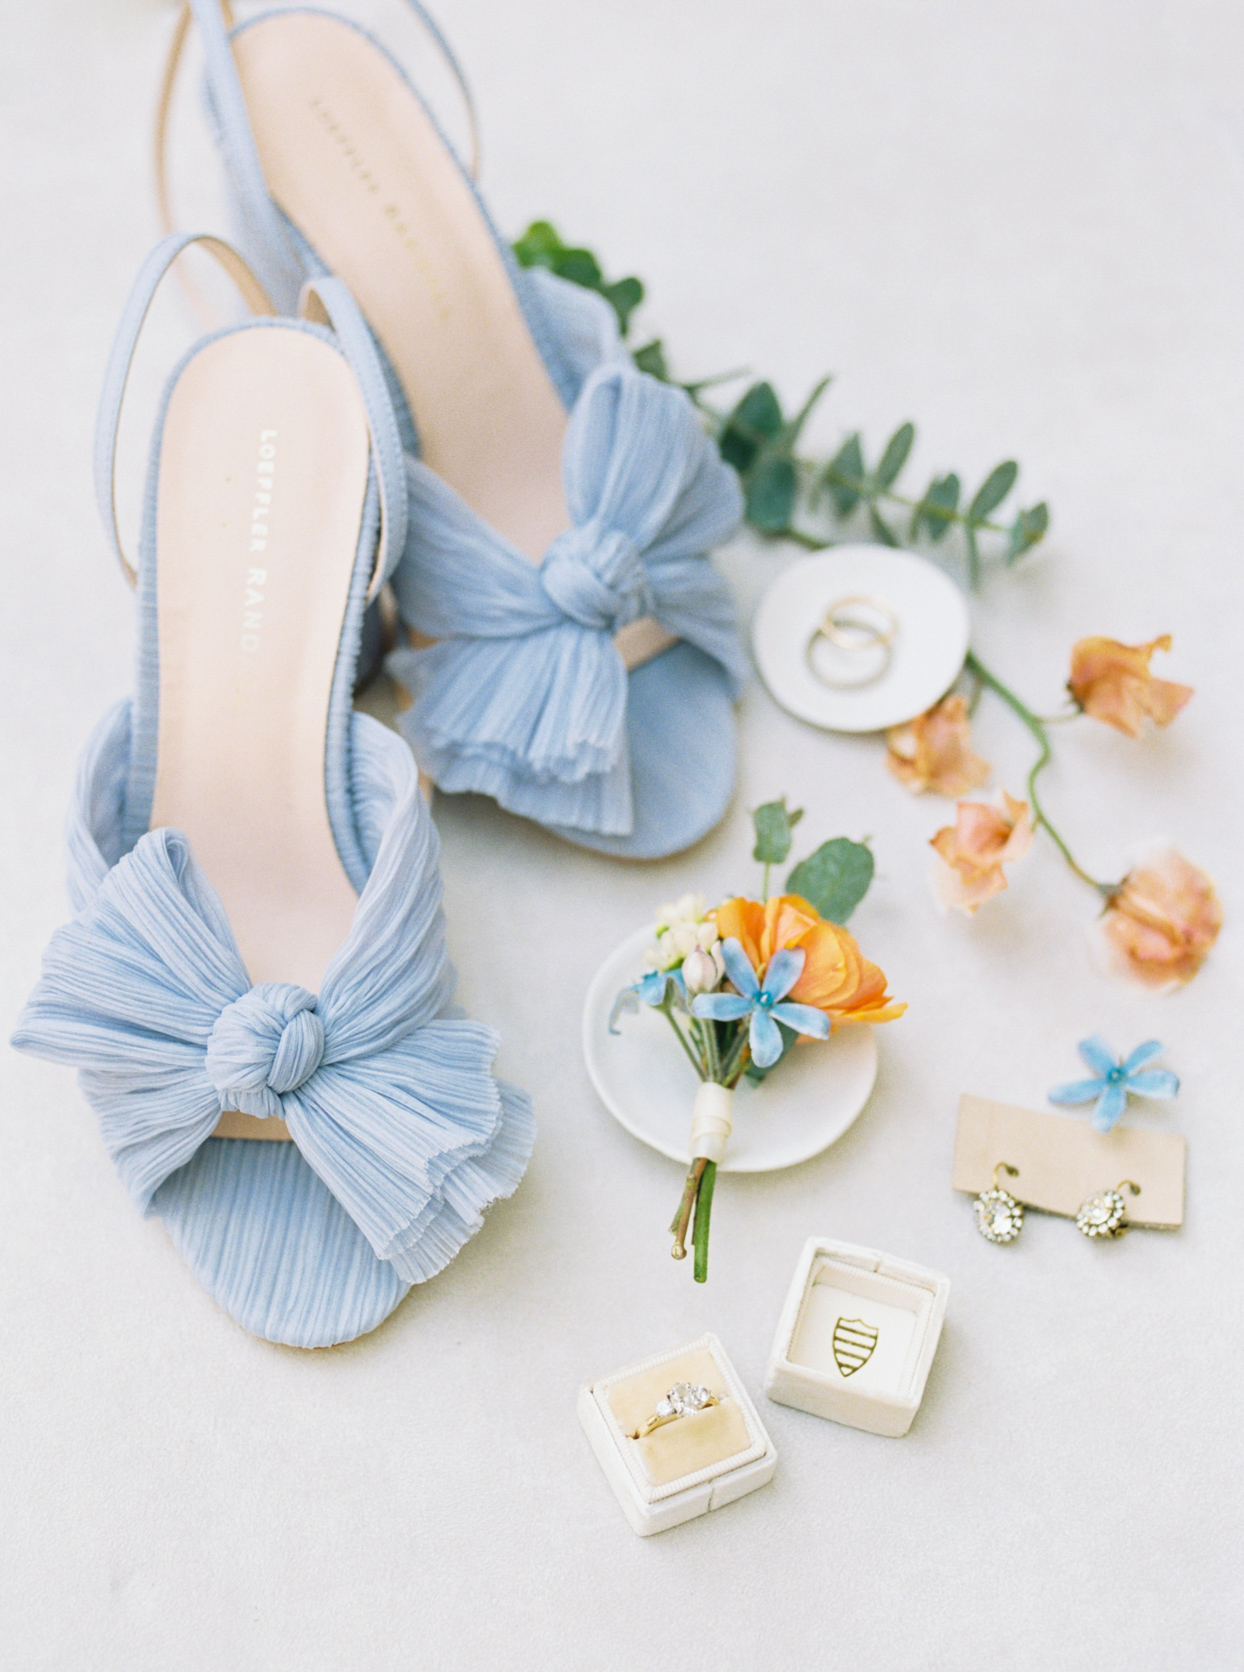 bride's pastel blue wedding shoes and accessories